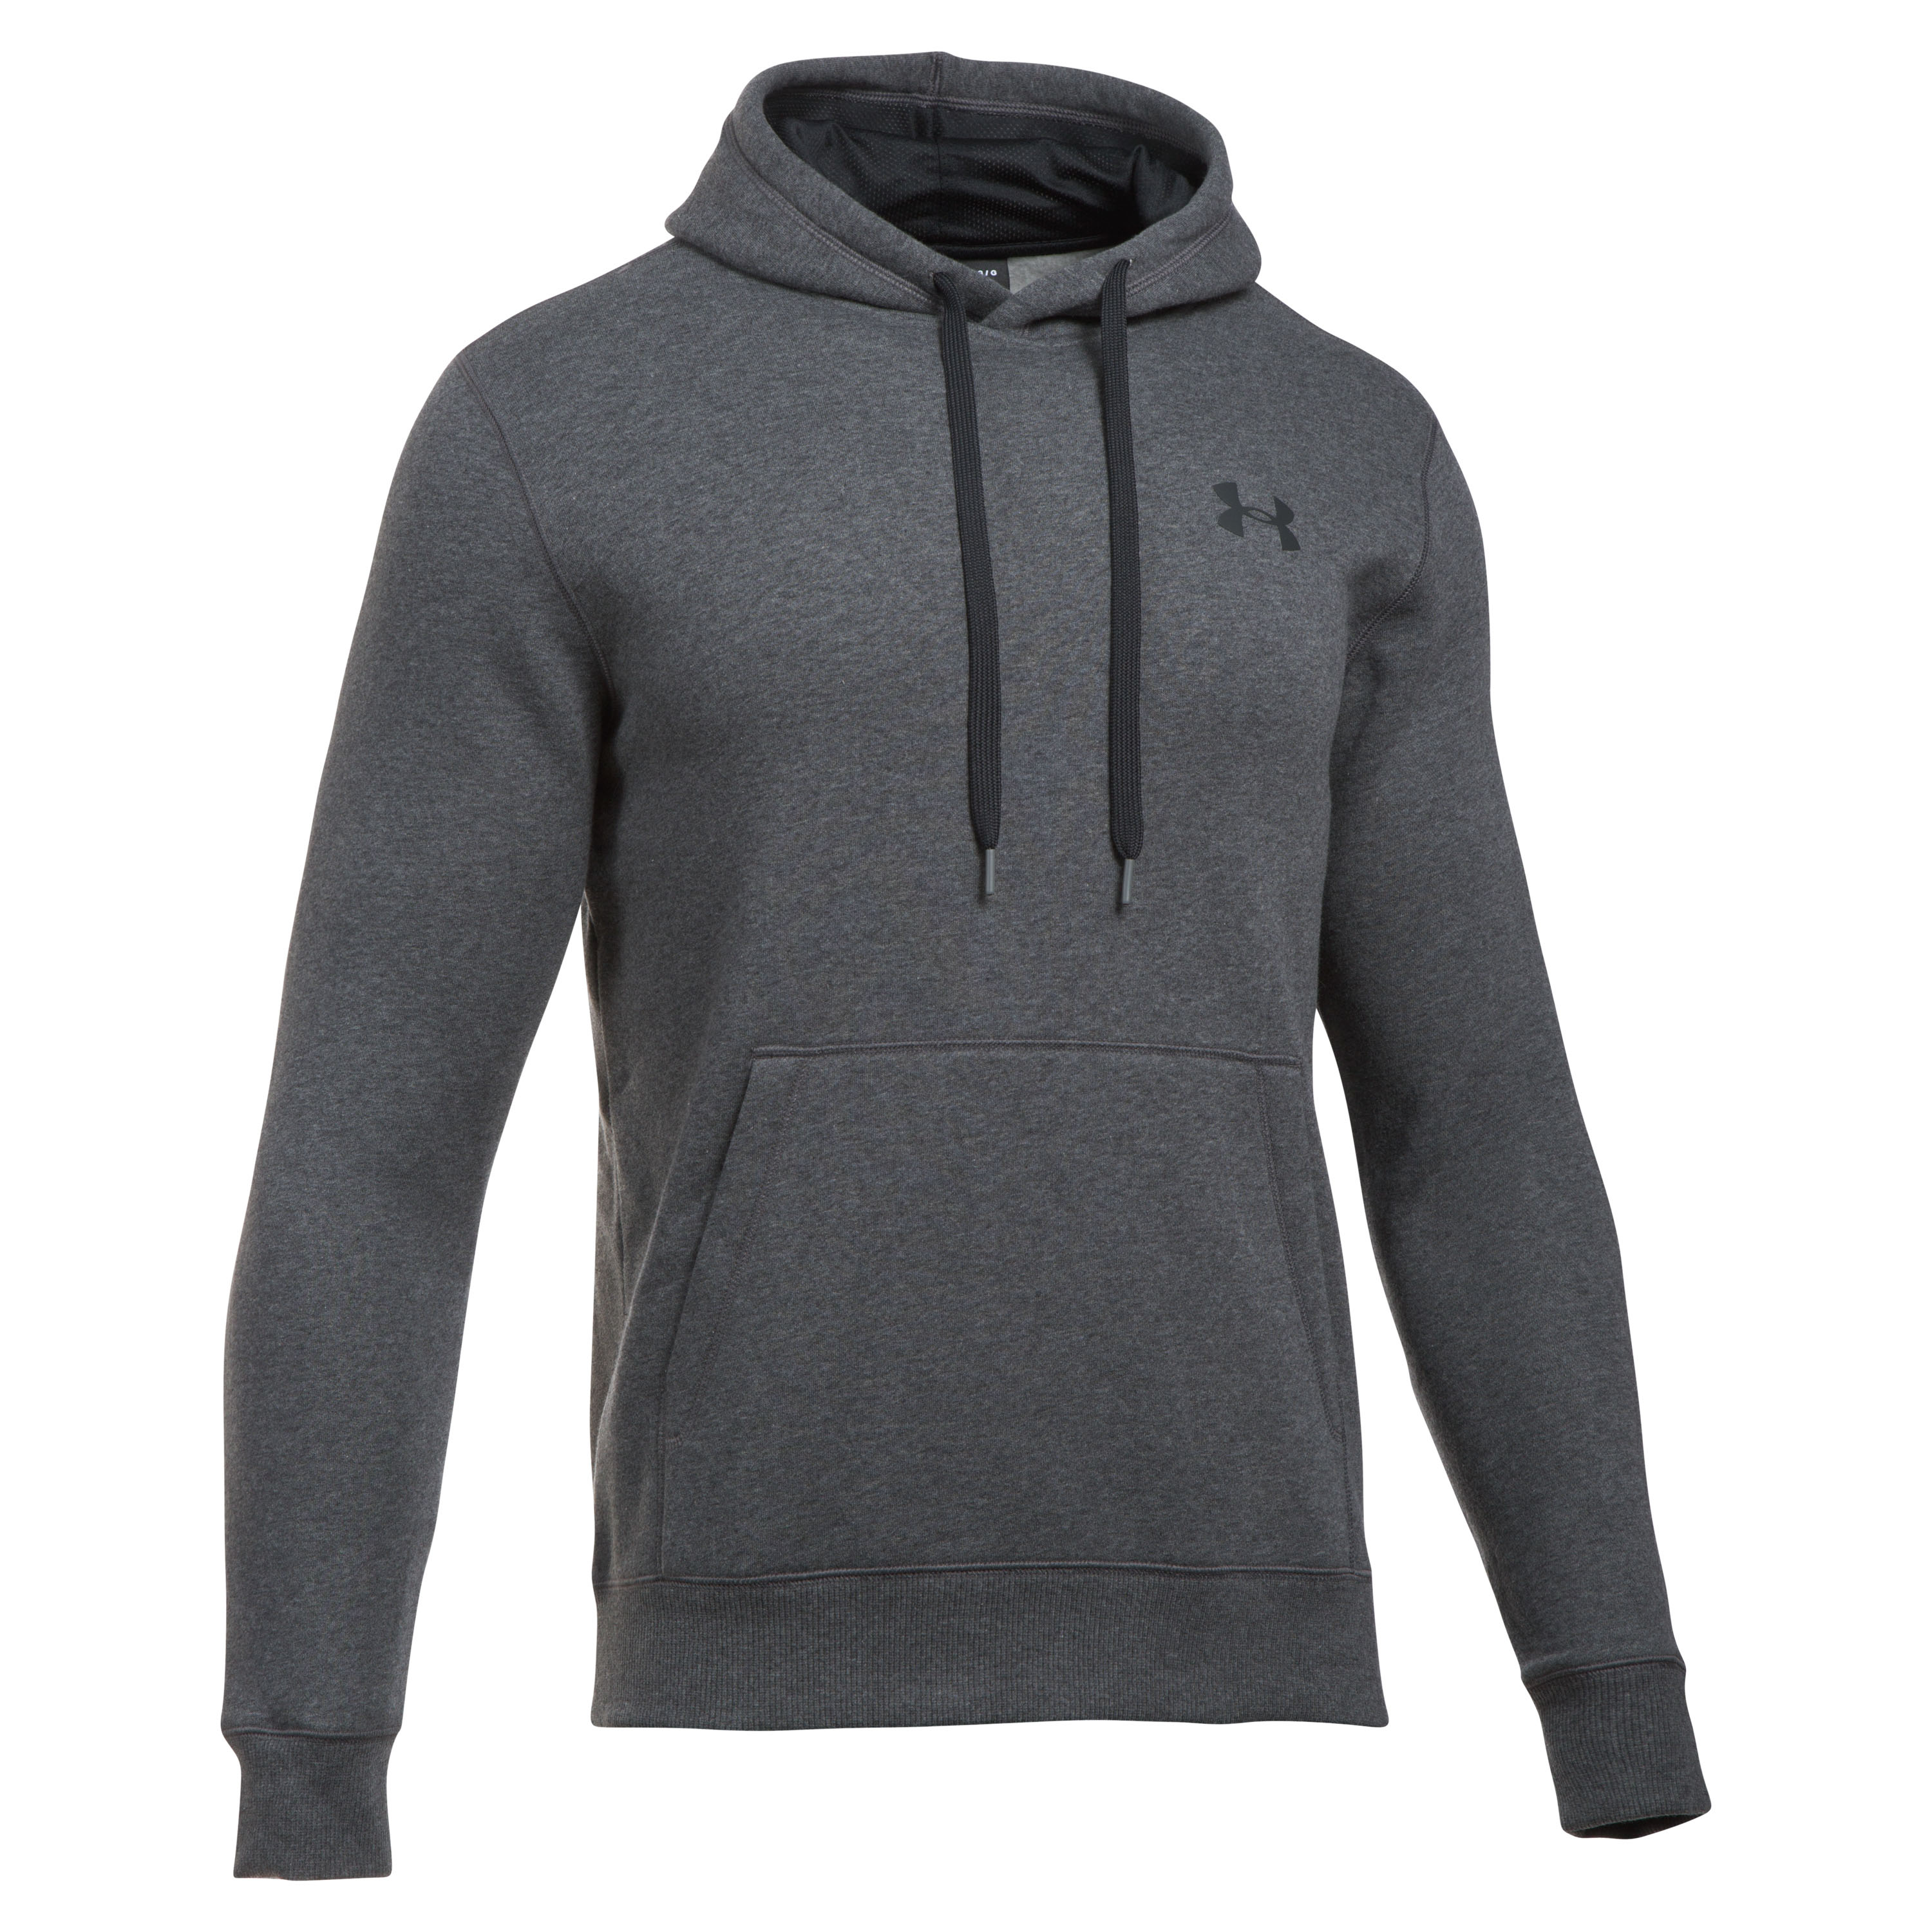 Under Armour Hoodie Rival Fitted gray mottled